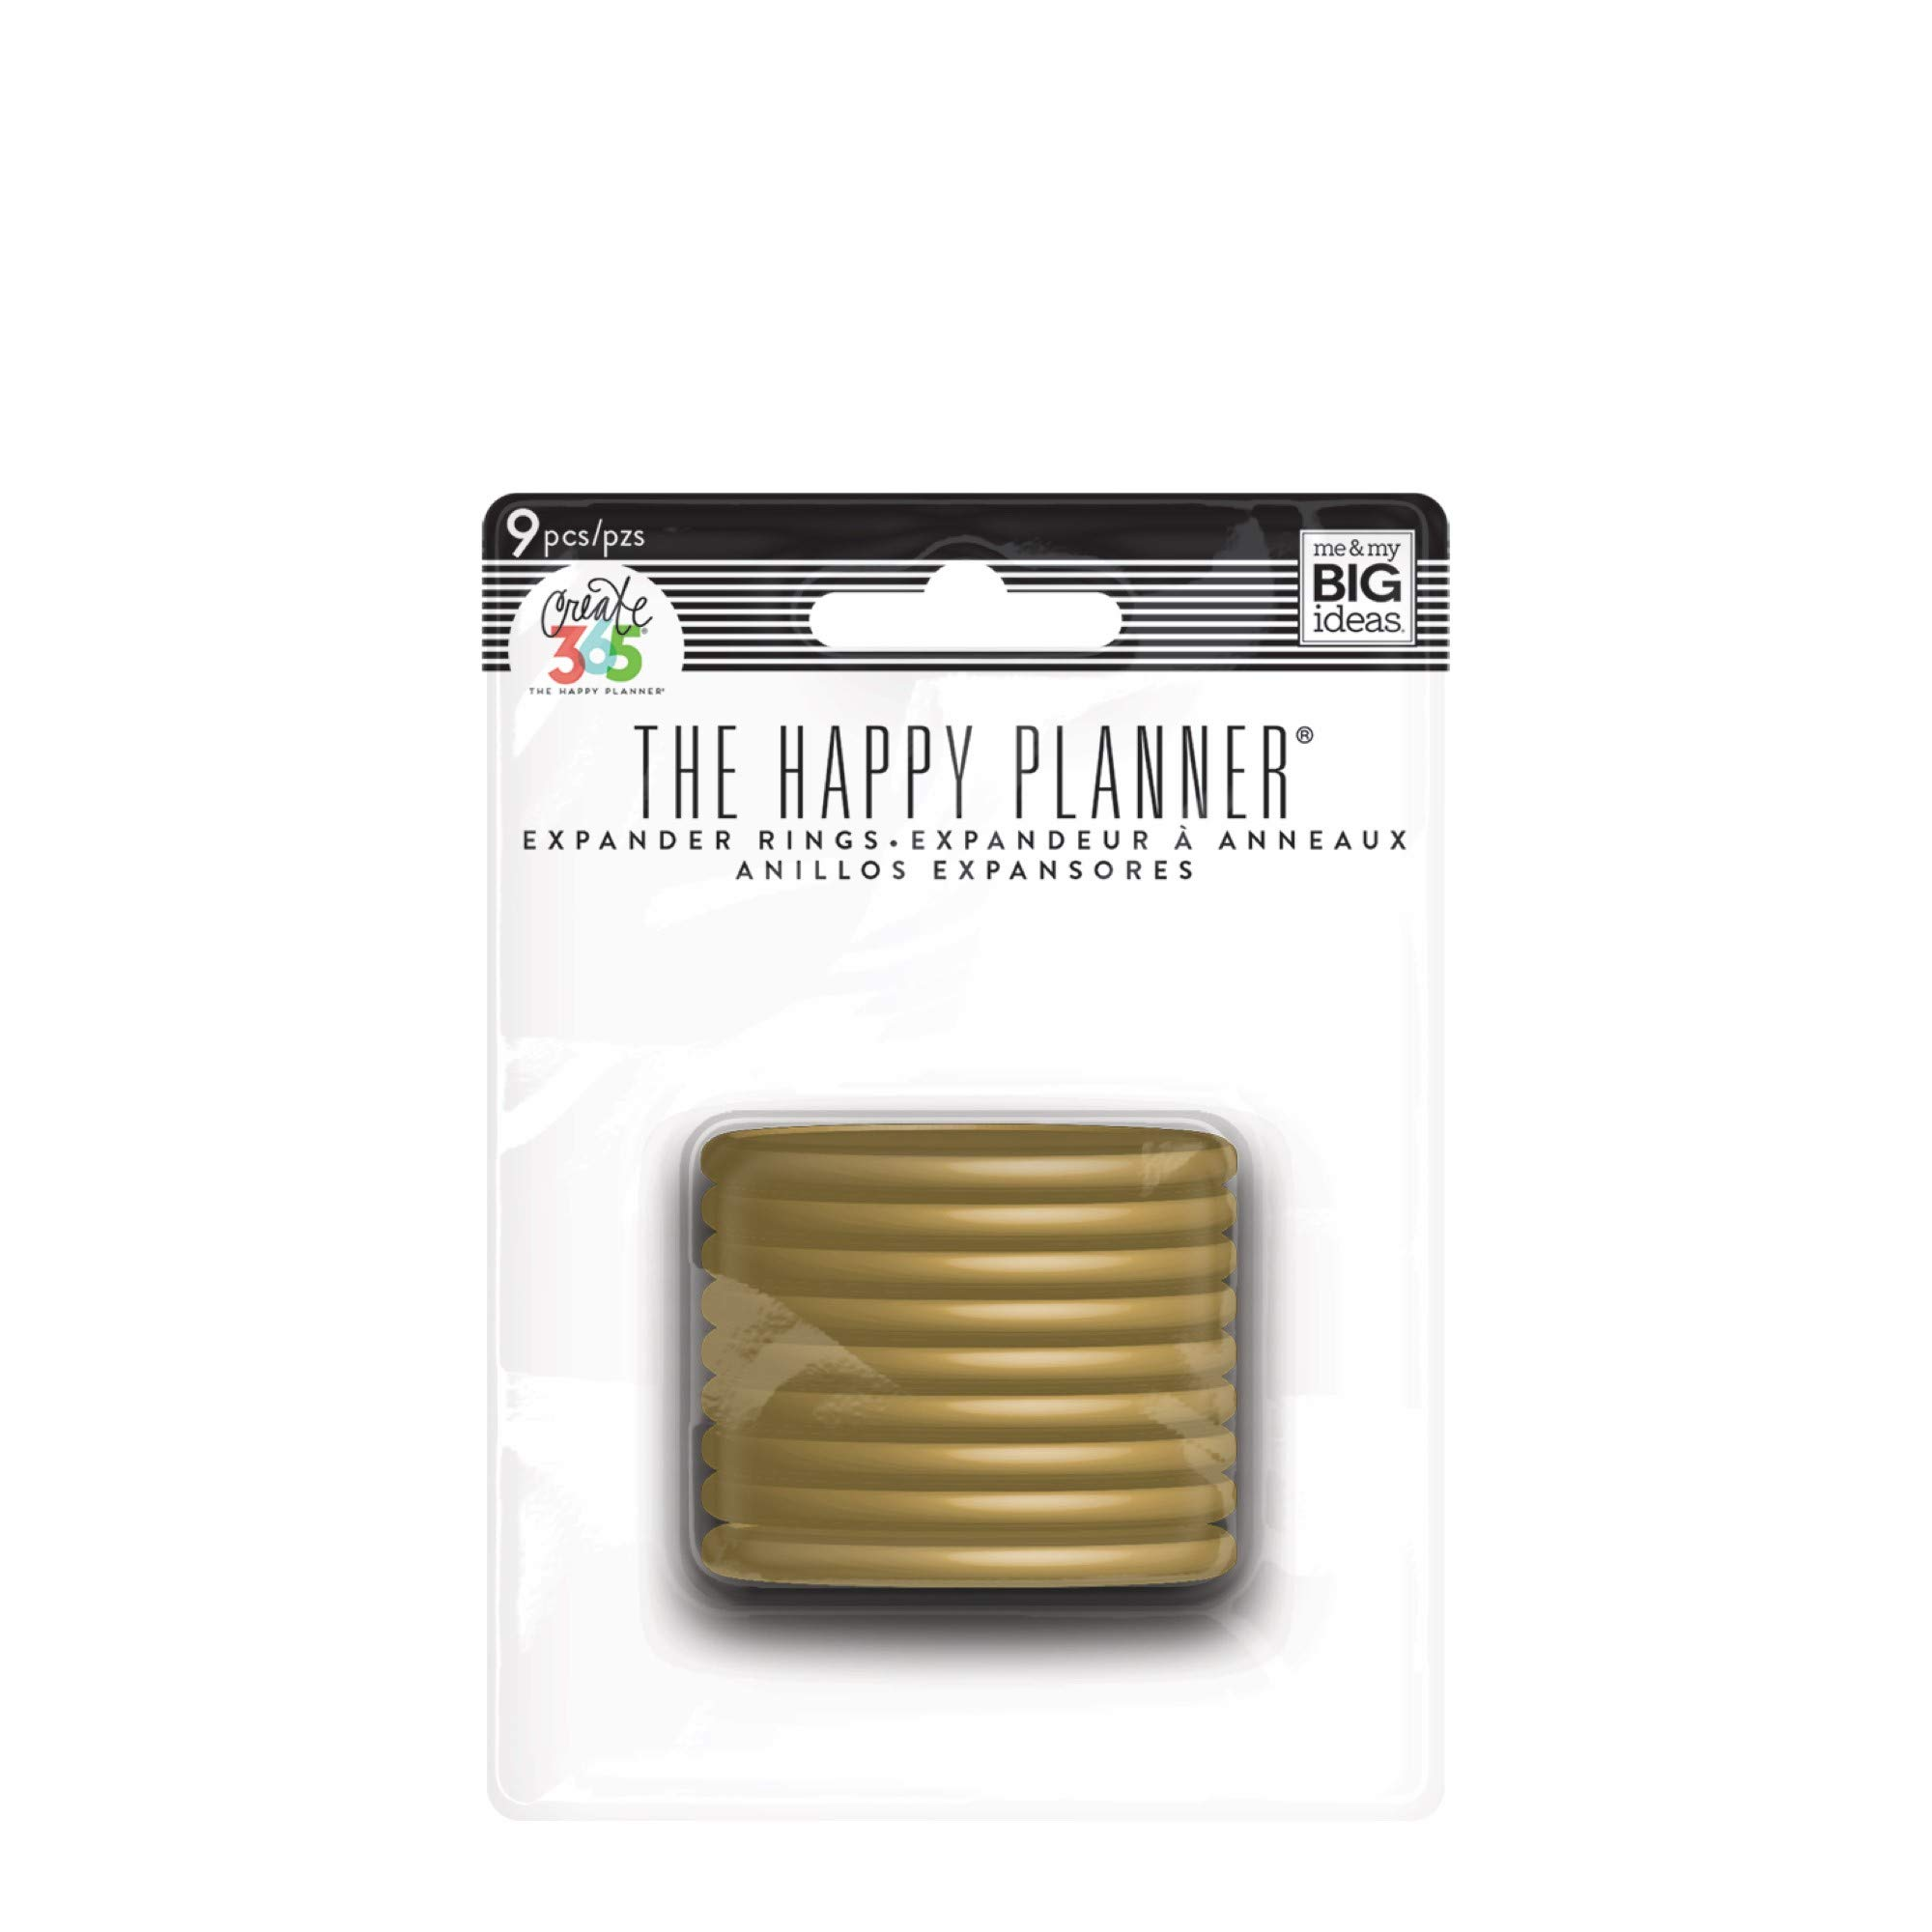 me & my BIG ideas Plastic Expander Discs, Gold - The Happy Planner Scrapbooking Supplies - Add Extra Pages, Notes & Artwork - Create More Space for Notebooks, Planners & Journals - Expander Size